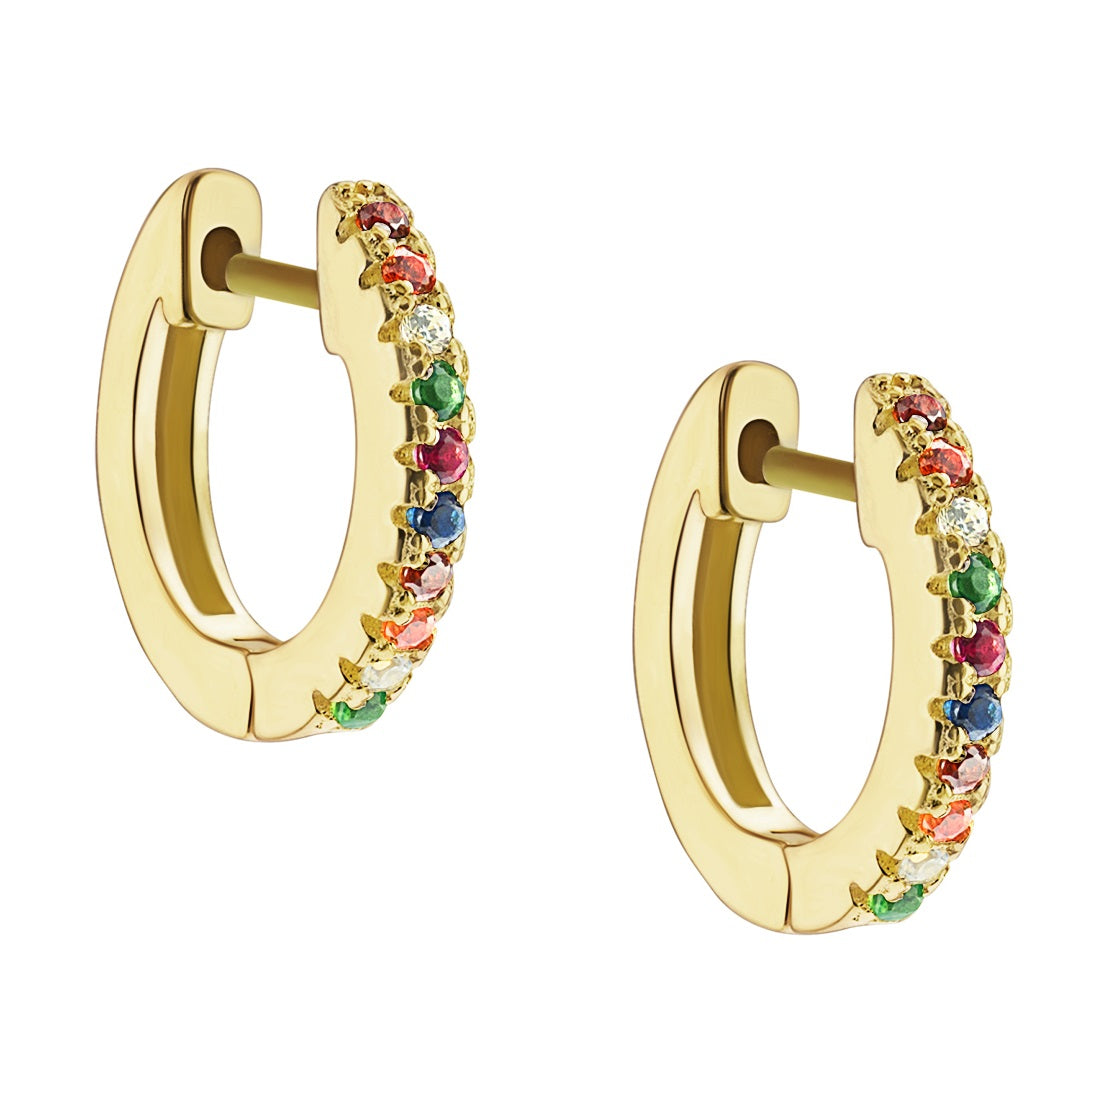 Rainbow Pave Huggie Hoop Earrings - Yellow Gold - Voare Jewelry